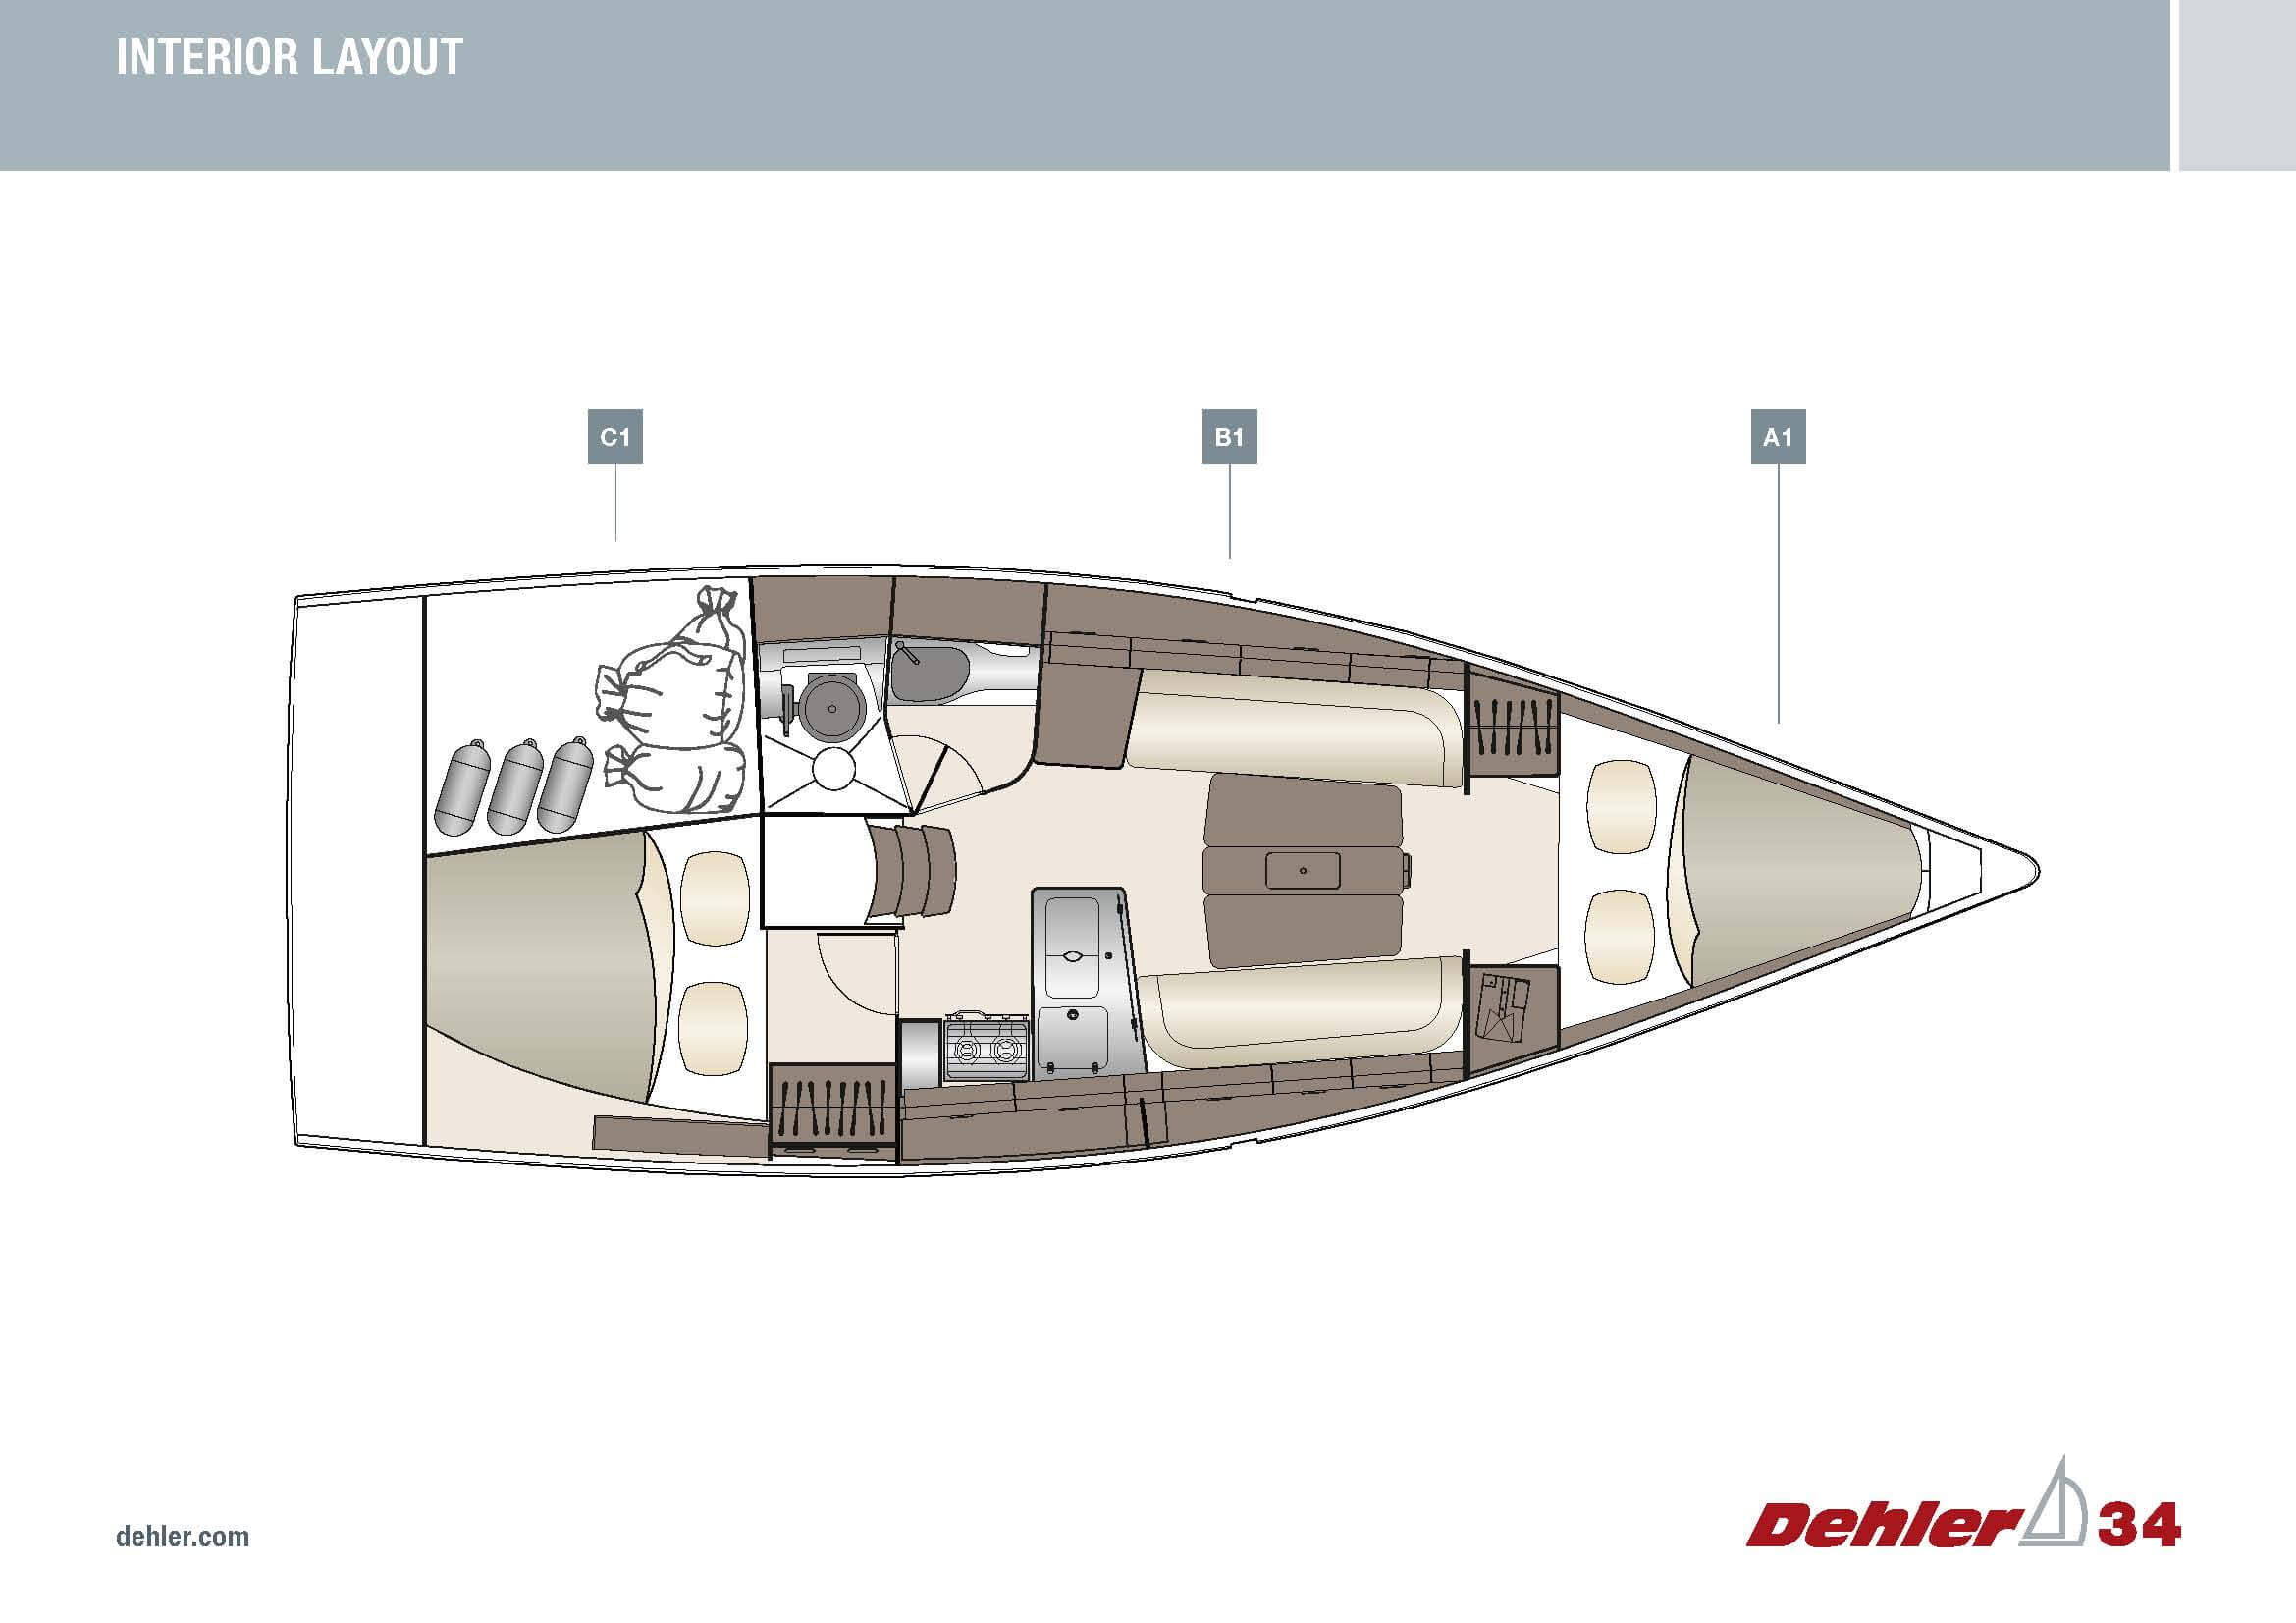 Dehler34__Interior_Layout_Standard